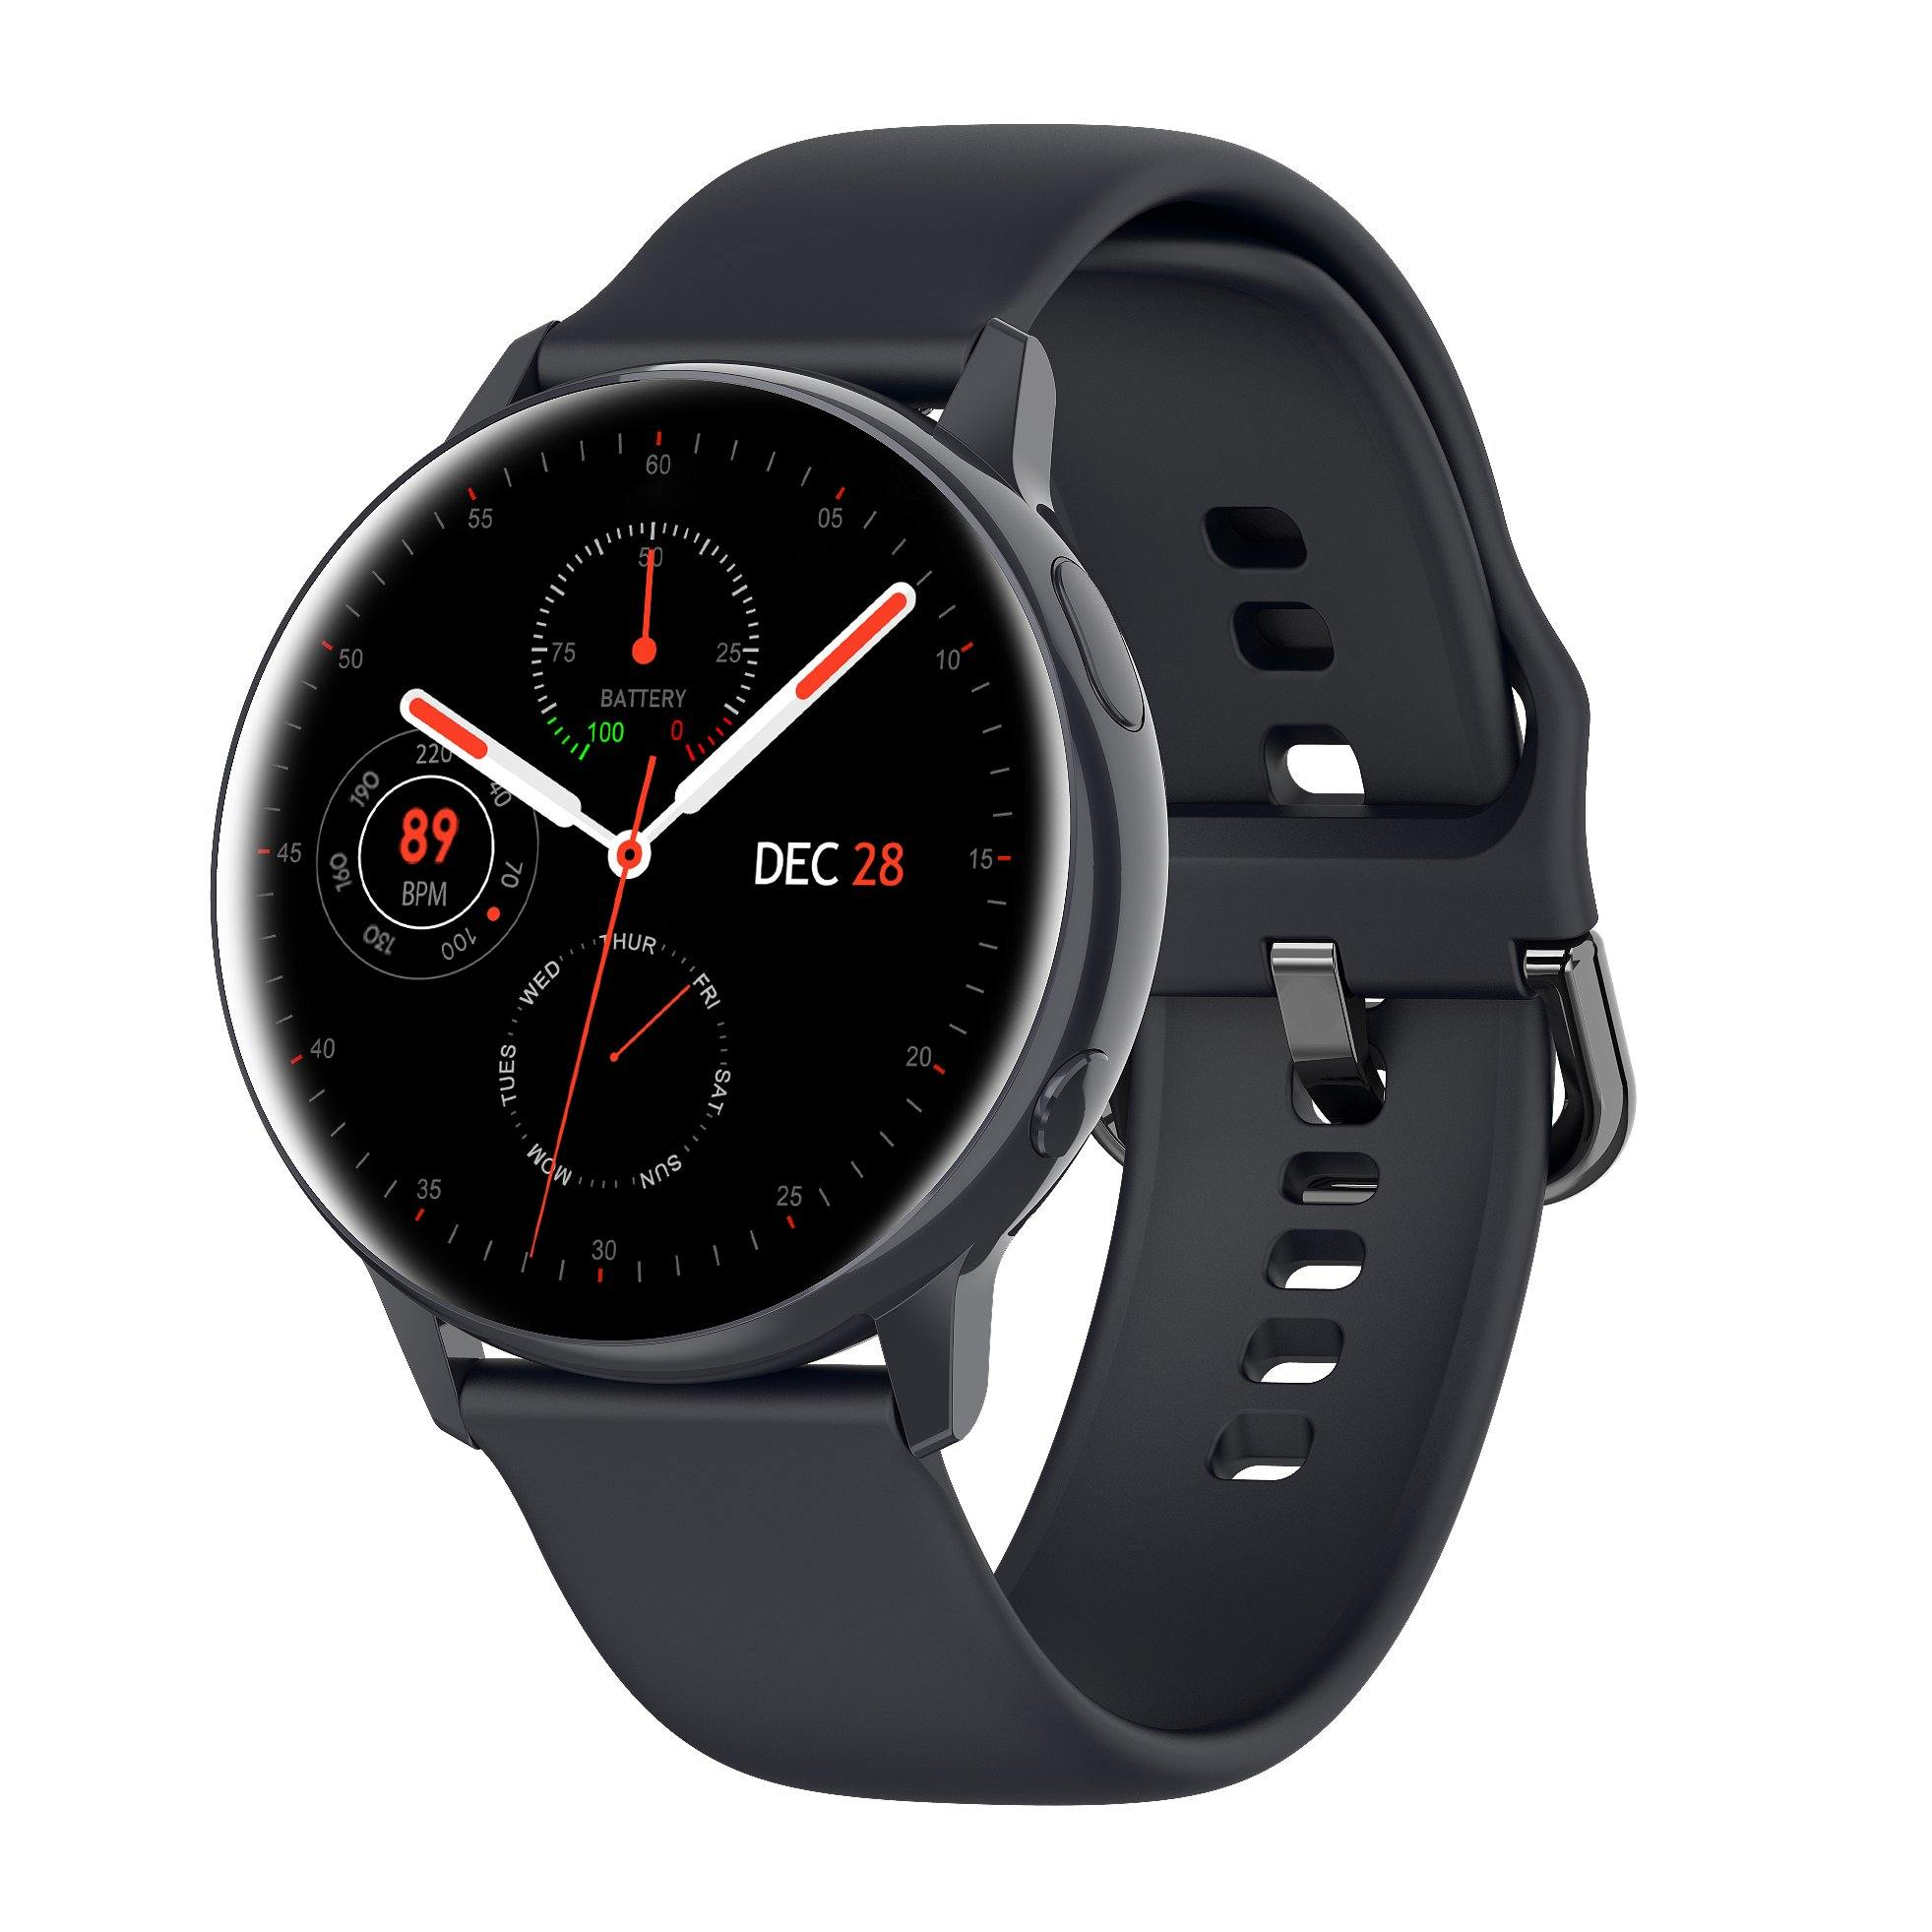 Microwear SG2 Fitness/Smartwatch - Black Silicon - Smael South Africa